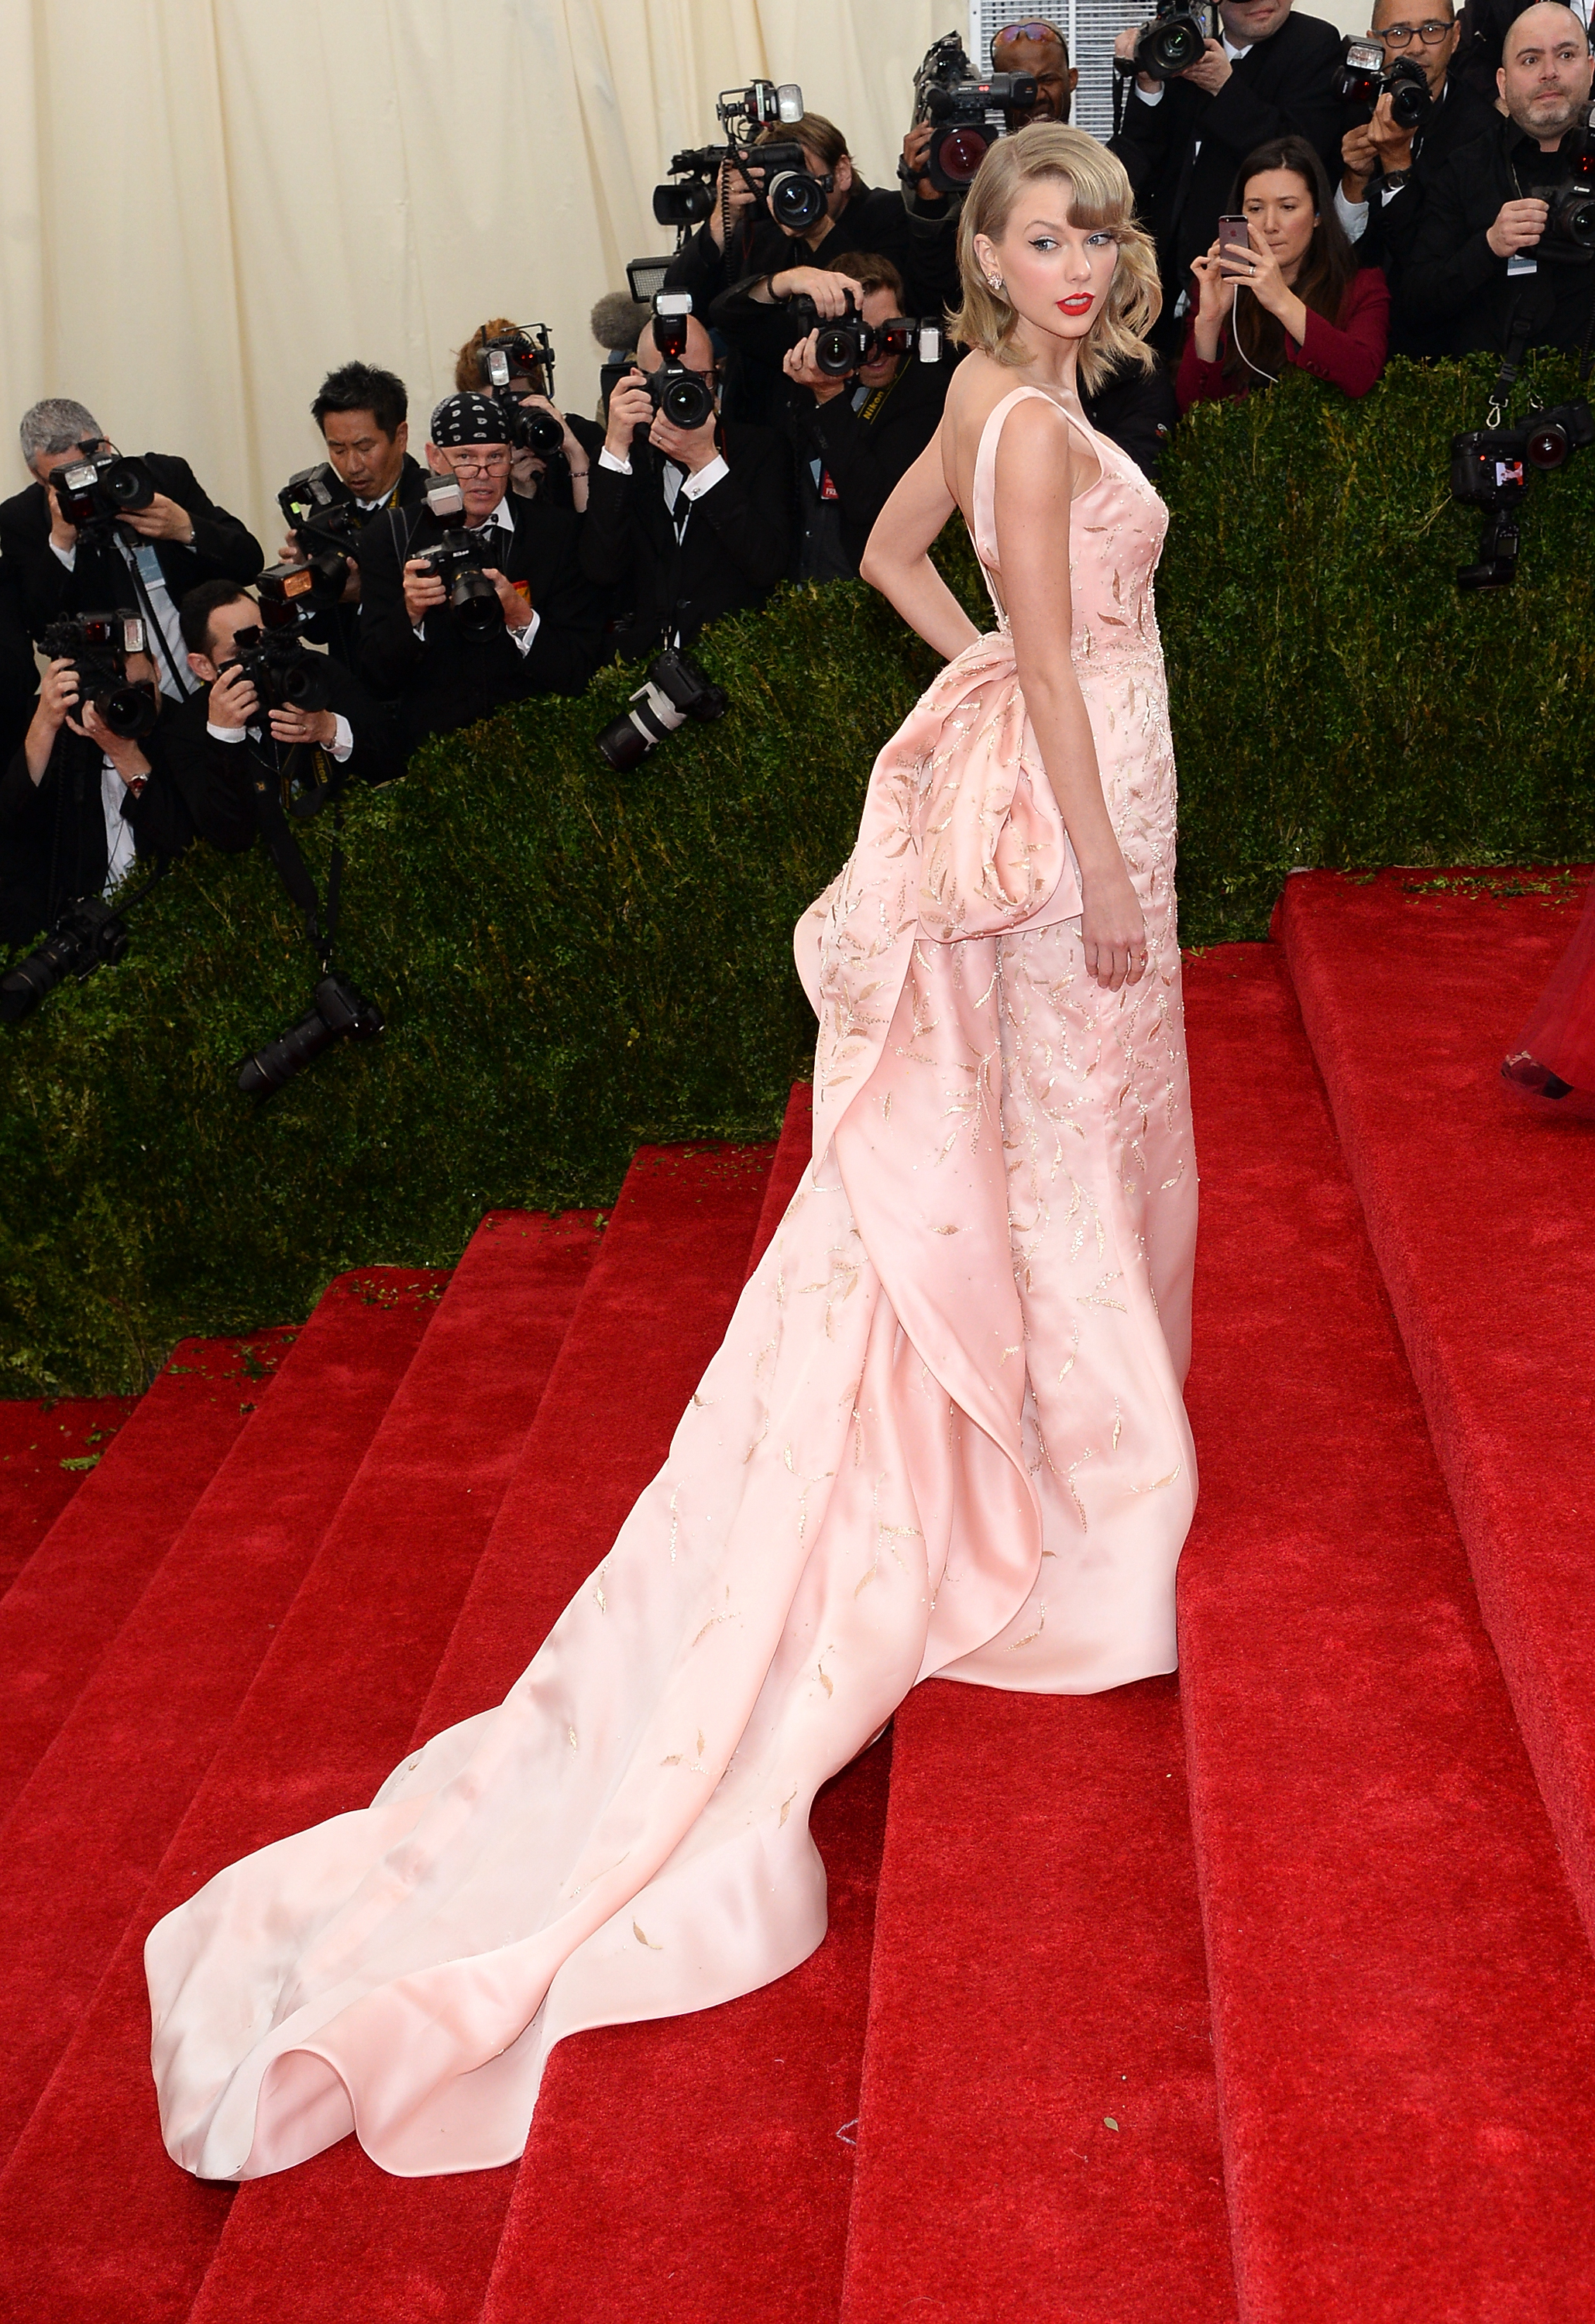 Taylor Swift's best red carpet fashion moments